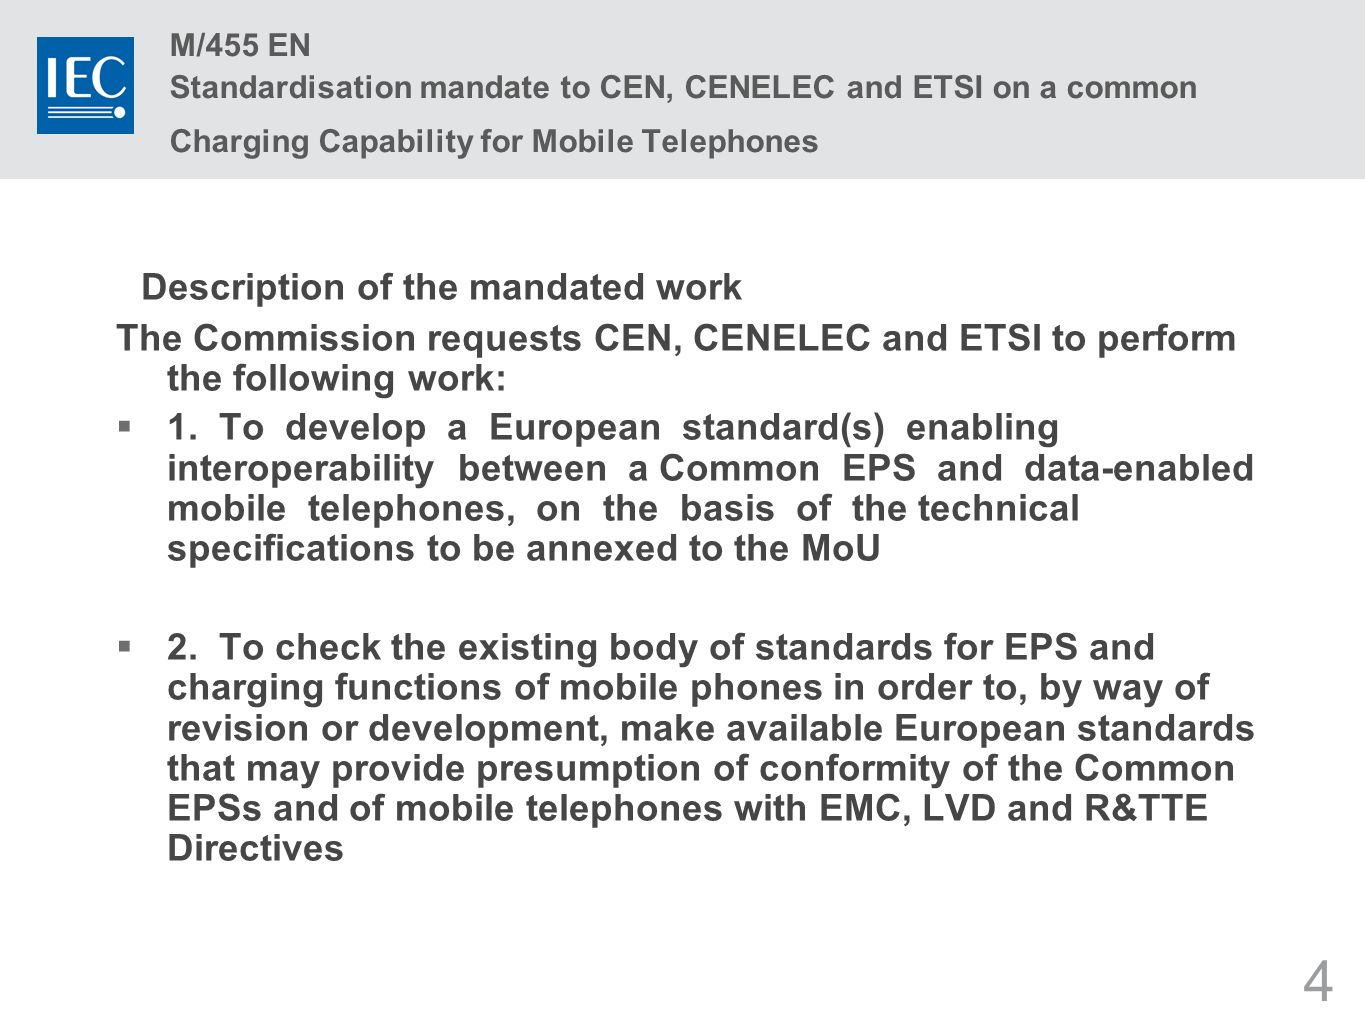 4 M/455 EN Standardisation mandate to CEN, CENELEC and ETSI on a common Charging Capability for Mobile Telephones Description of the mandated work The Commission requests CEN, CENELEC and ETSI to perform the following work: 1.